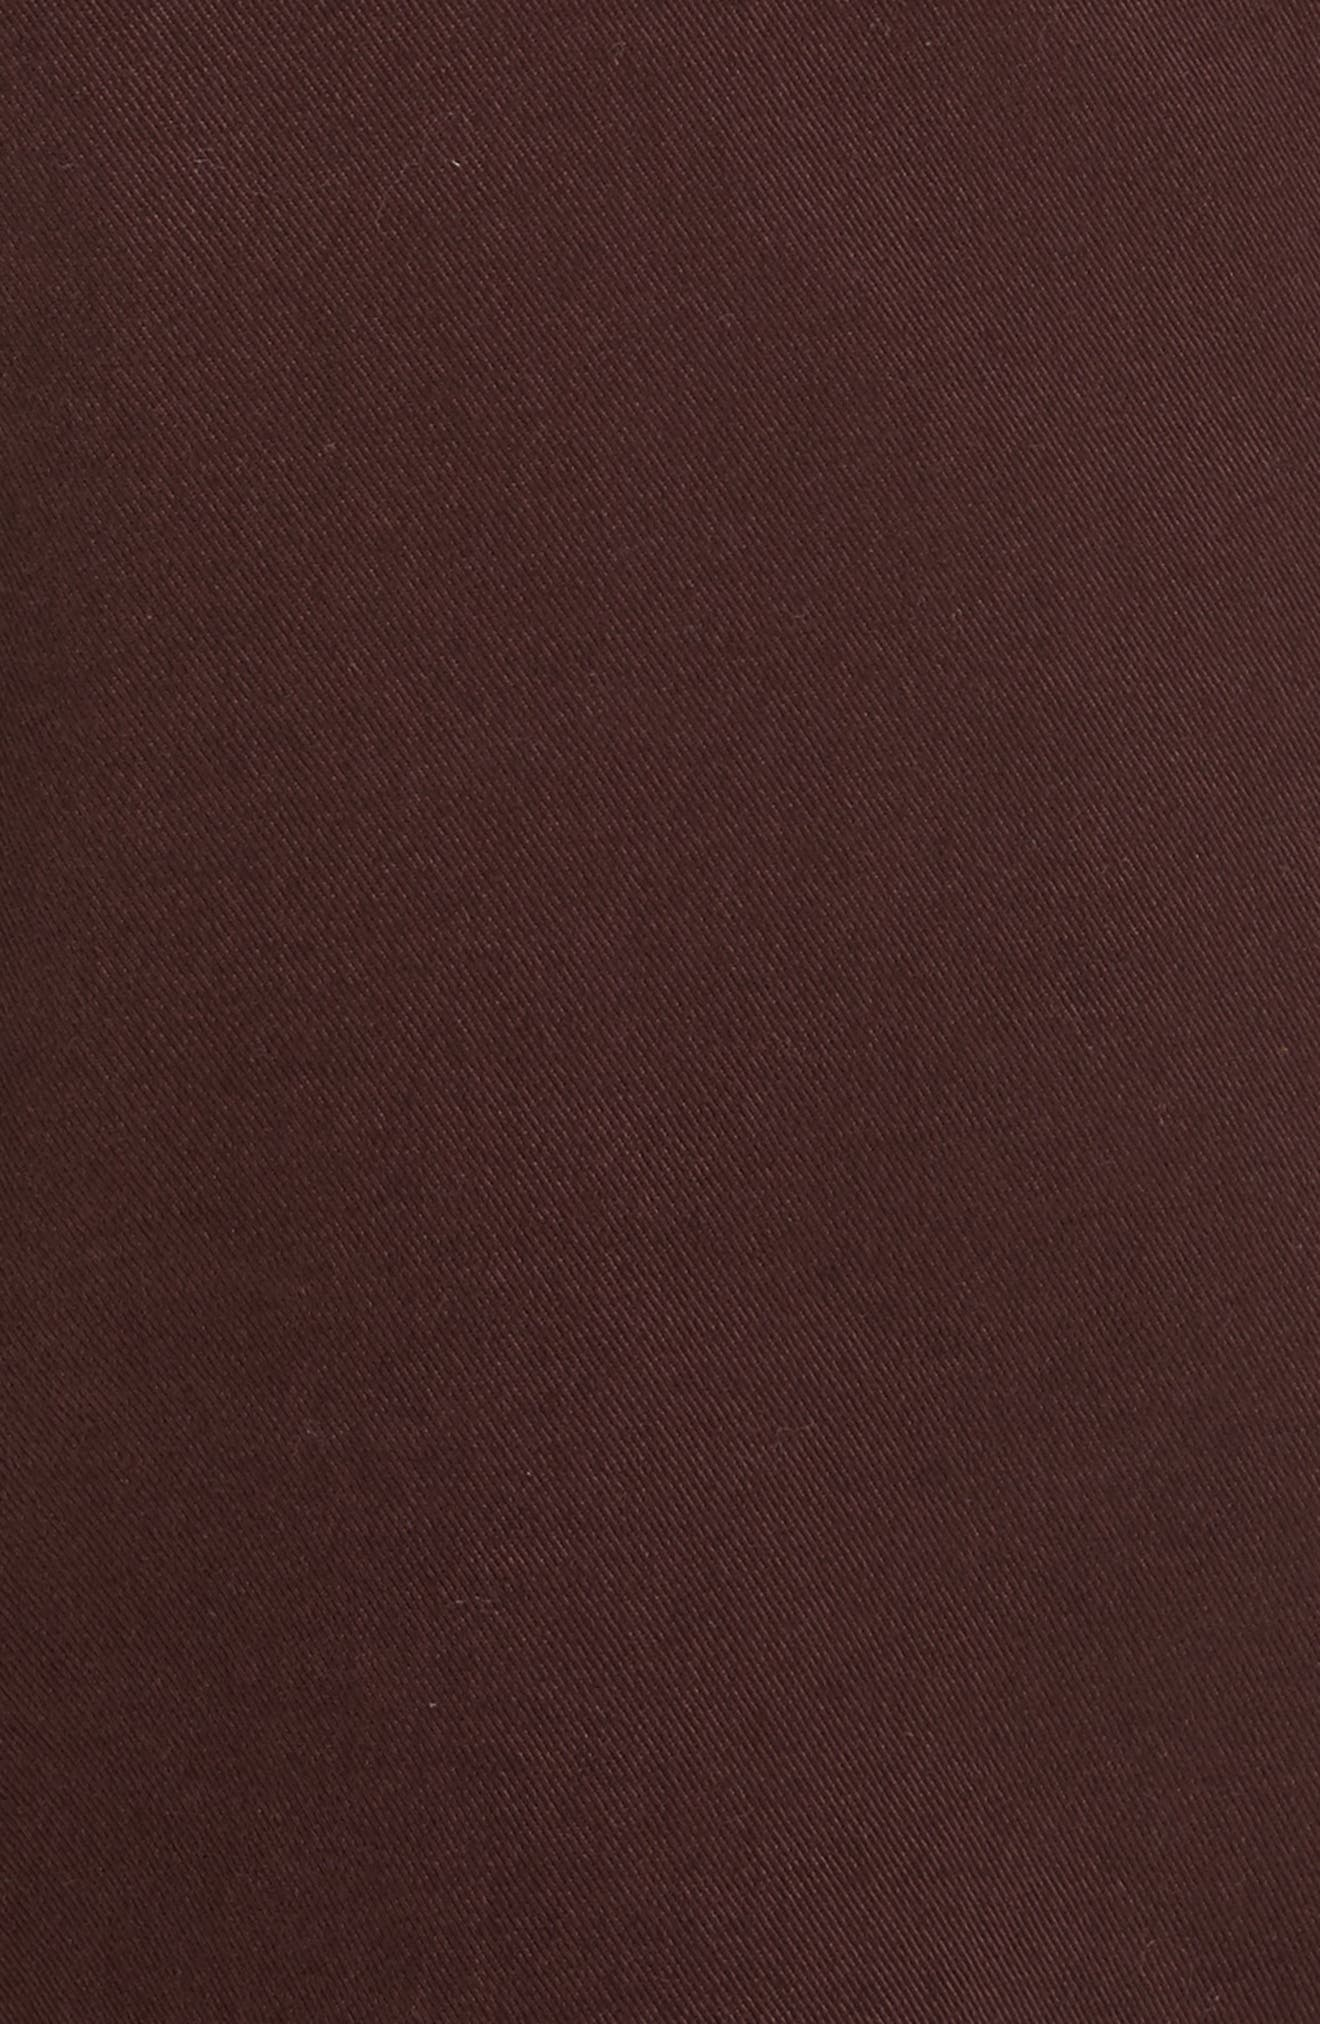 Aros Brushed Twill Chinos,                             Alternate thumbnail 5, color,                             Hematite Red